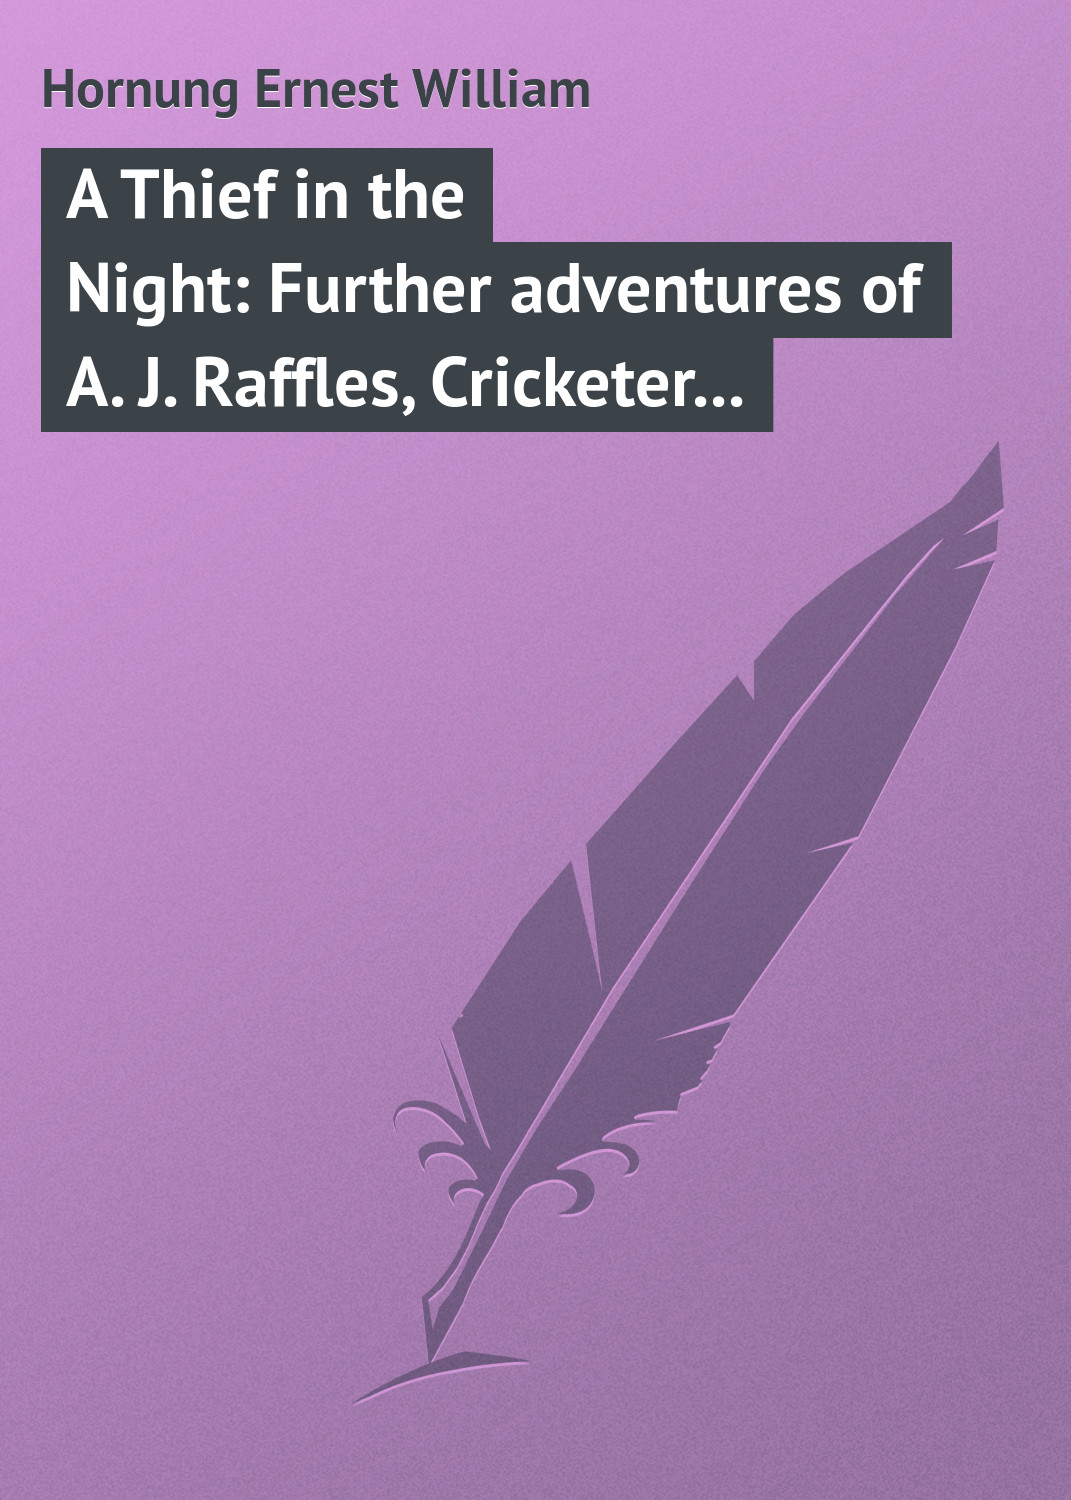 Hornung Ernest William A Thief in the Night: Further adventures of A. J. Raffles, Cricketer and Cracksman william wenton and the luridium thief